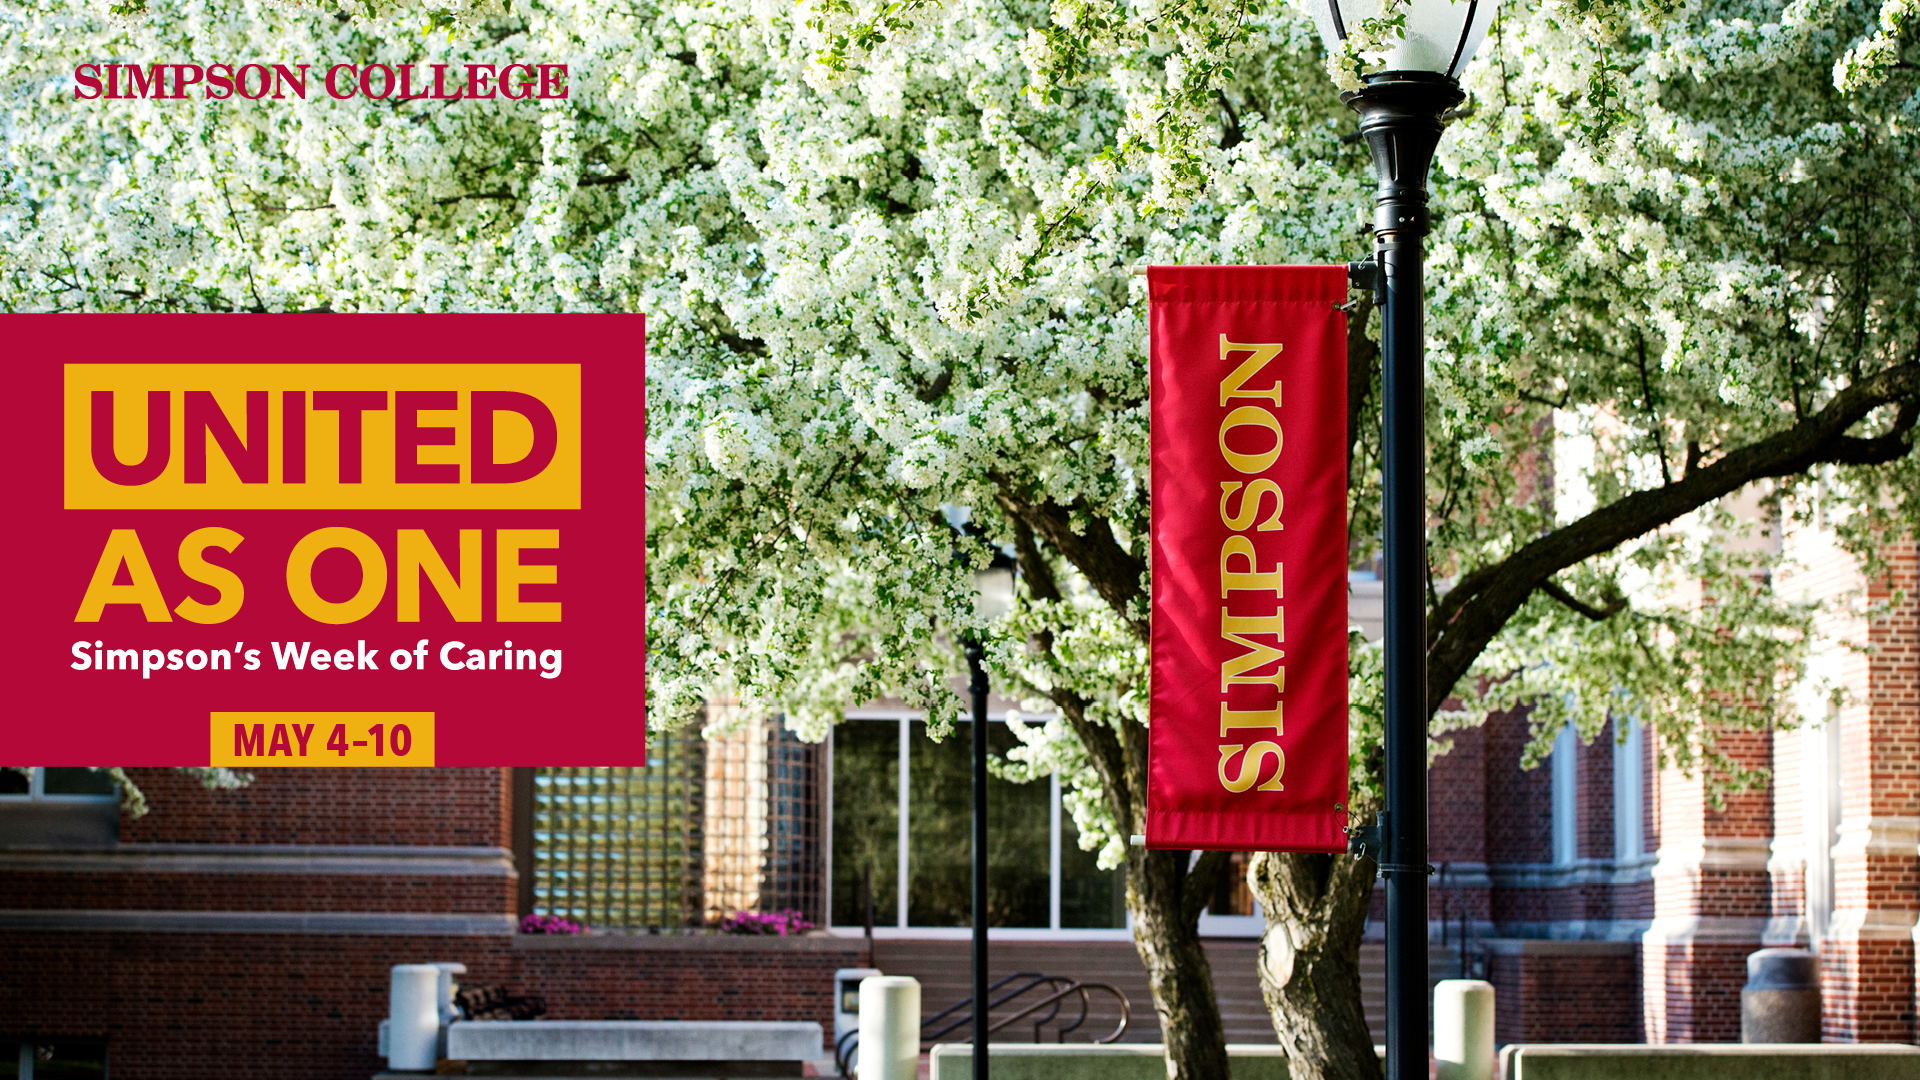 United as ONE: Simpson's Week of Caring Campus Photo